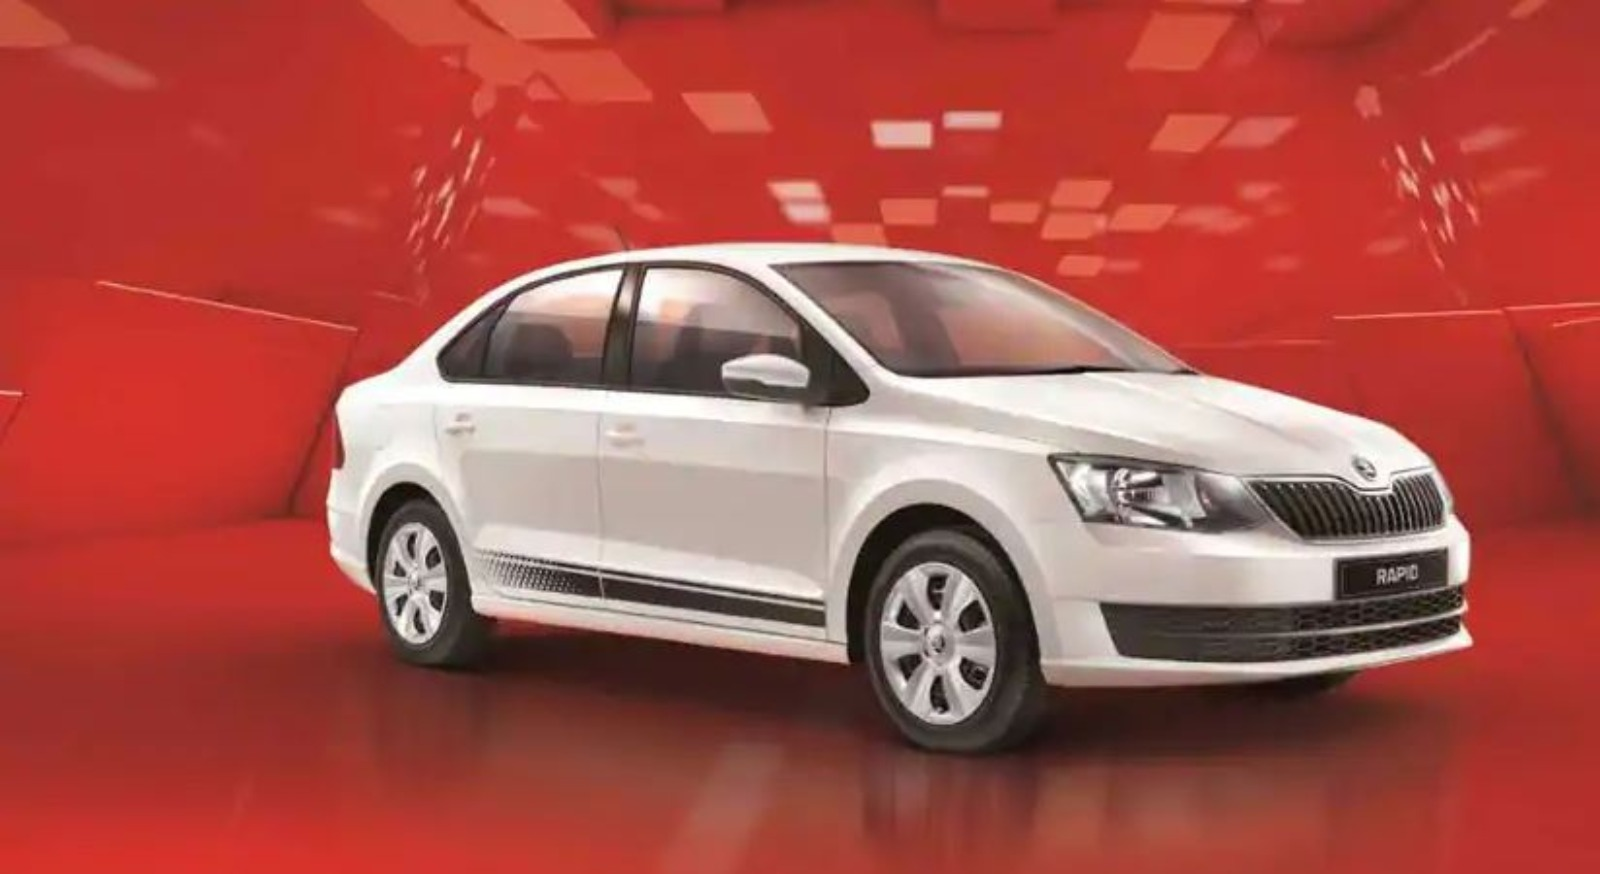 We Will Indeed Get The Cng Version Of The Skoda Rapid; Confirms Zac Hollis